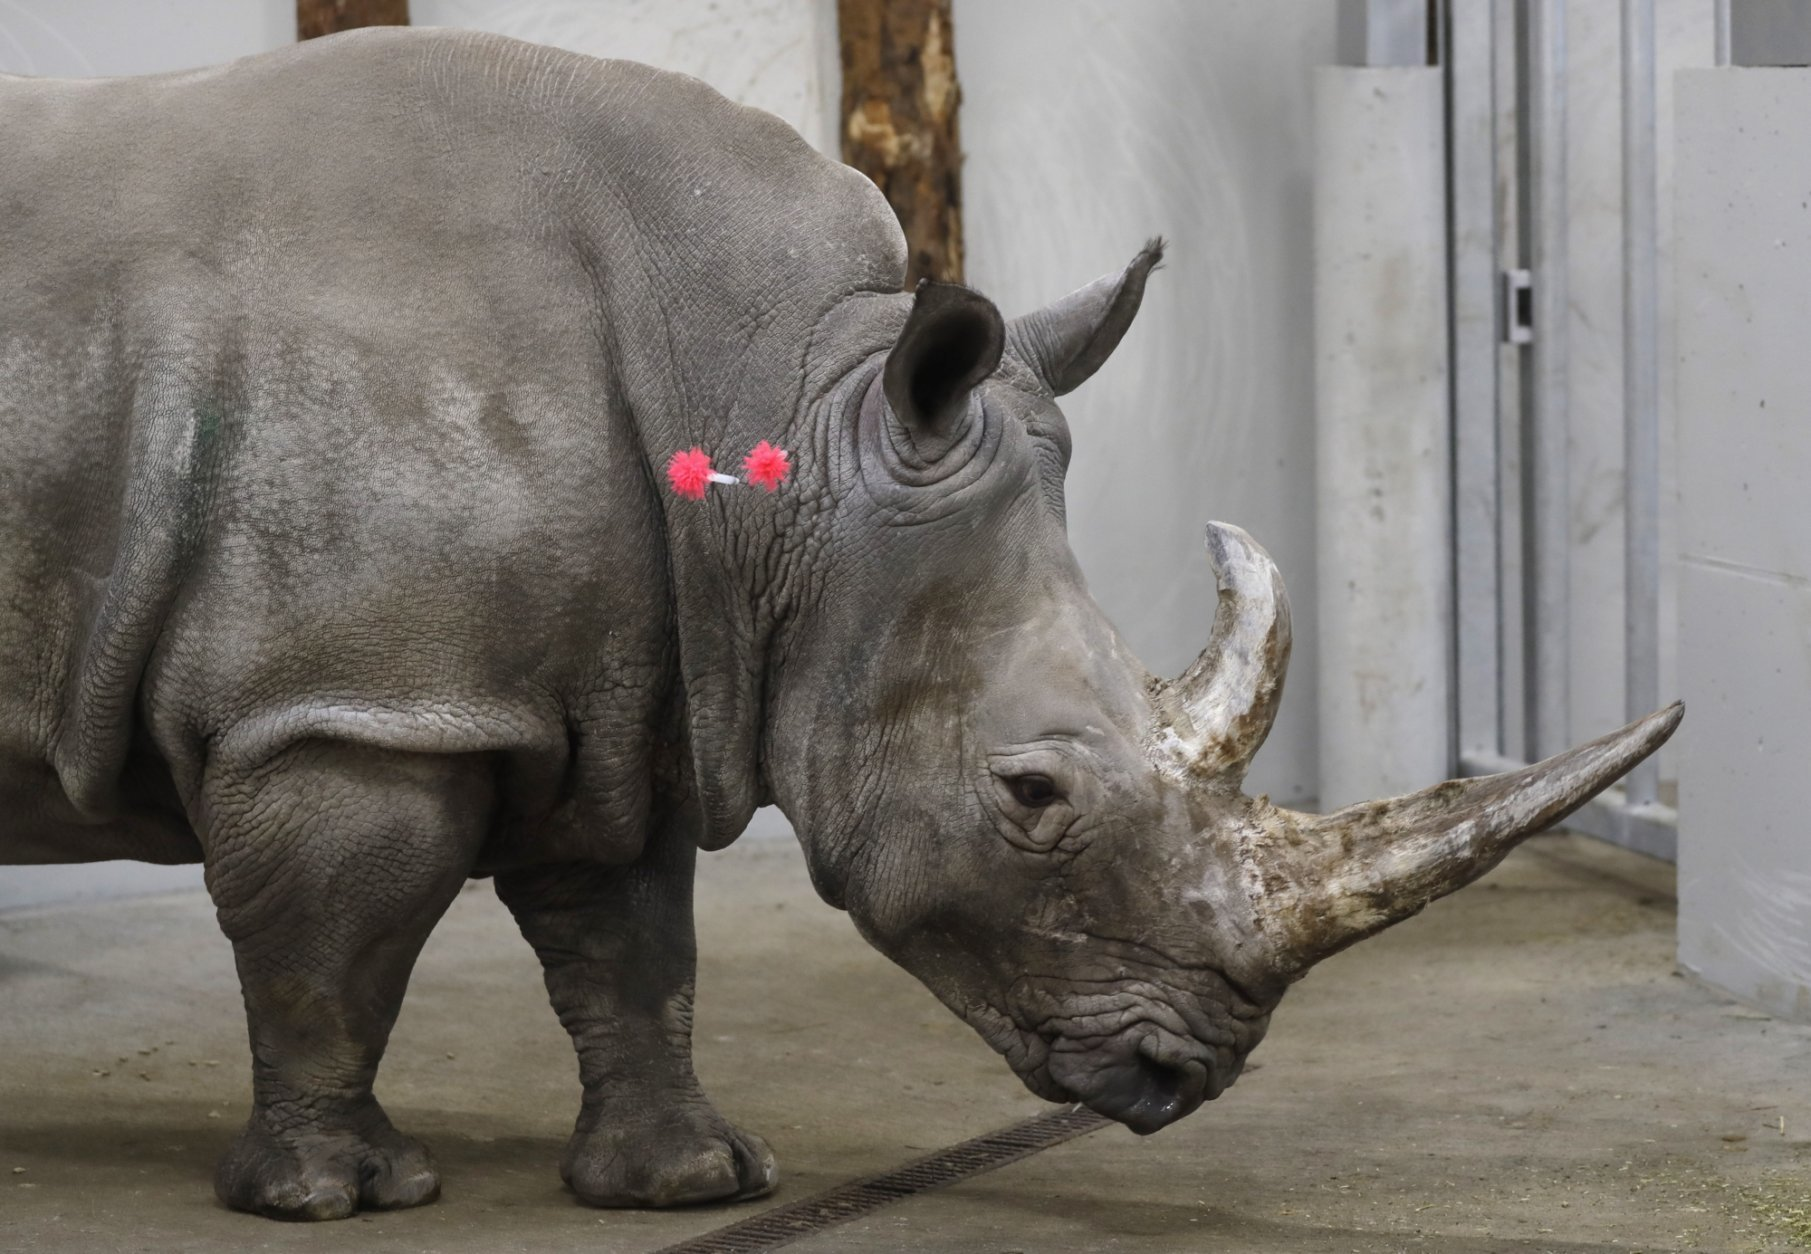 Female southern white rhino, 17-year-old Hope, is shot with tranquilizing darts, so a team of experts can harvest its eggs, at a zoo park in Chorzow, Poland, Wednesday, Feb. 13, 2019. (AP Photo/Petr David Josek)